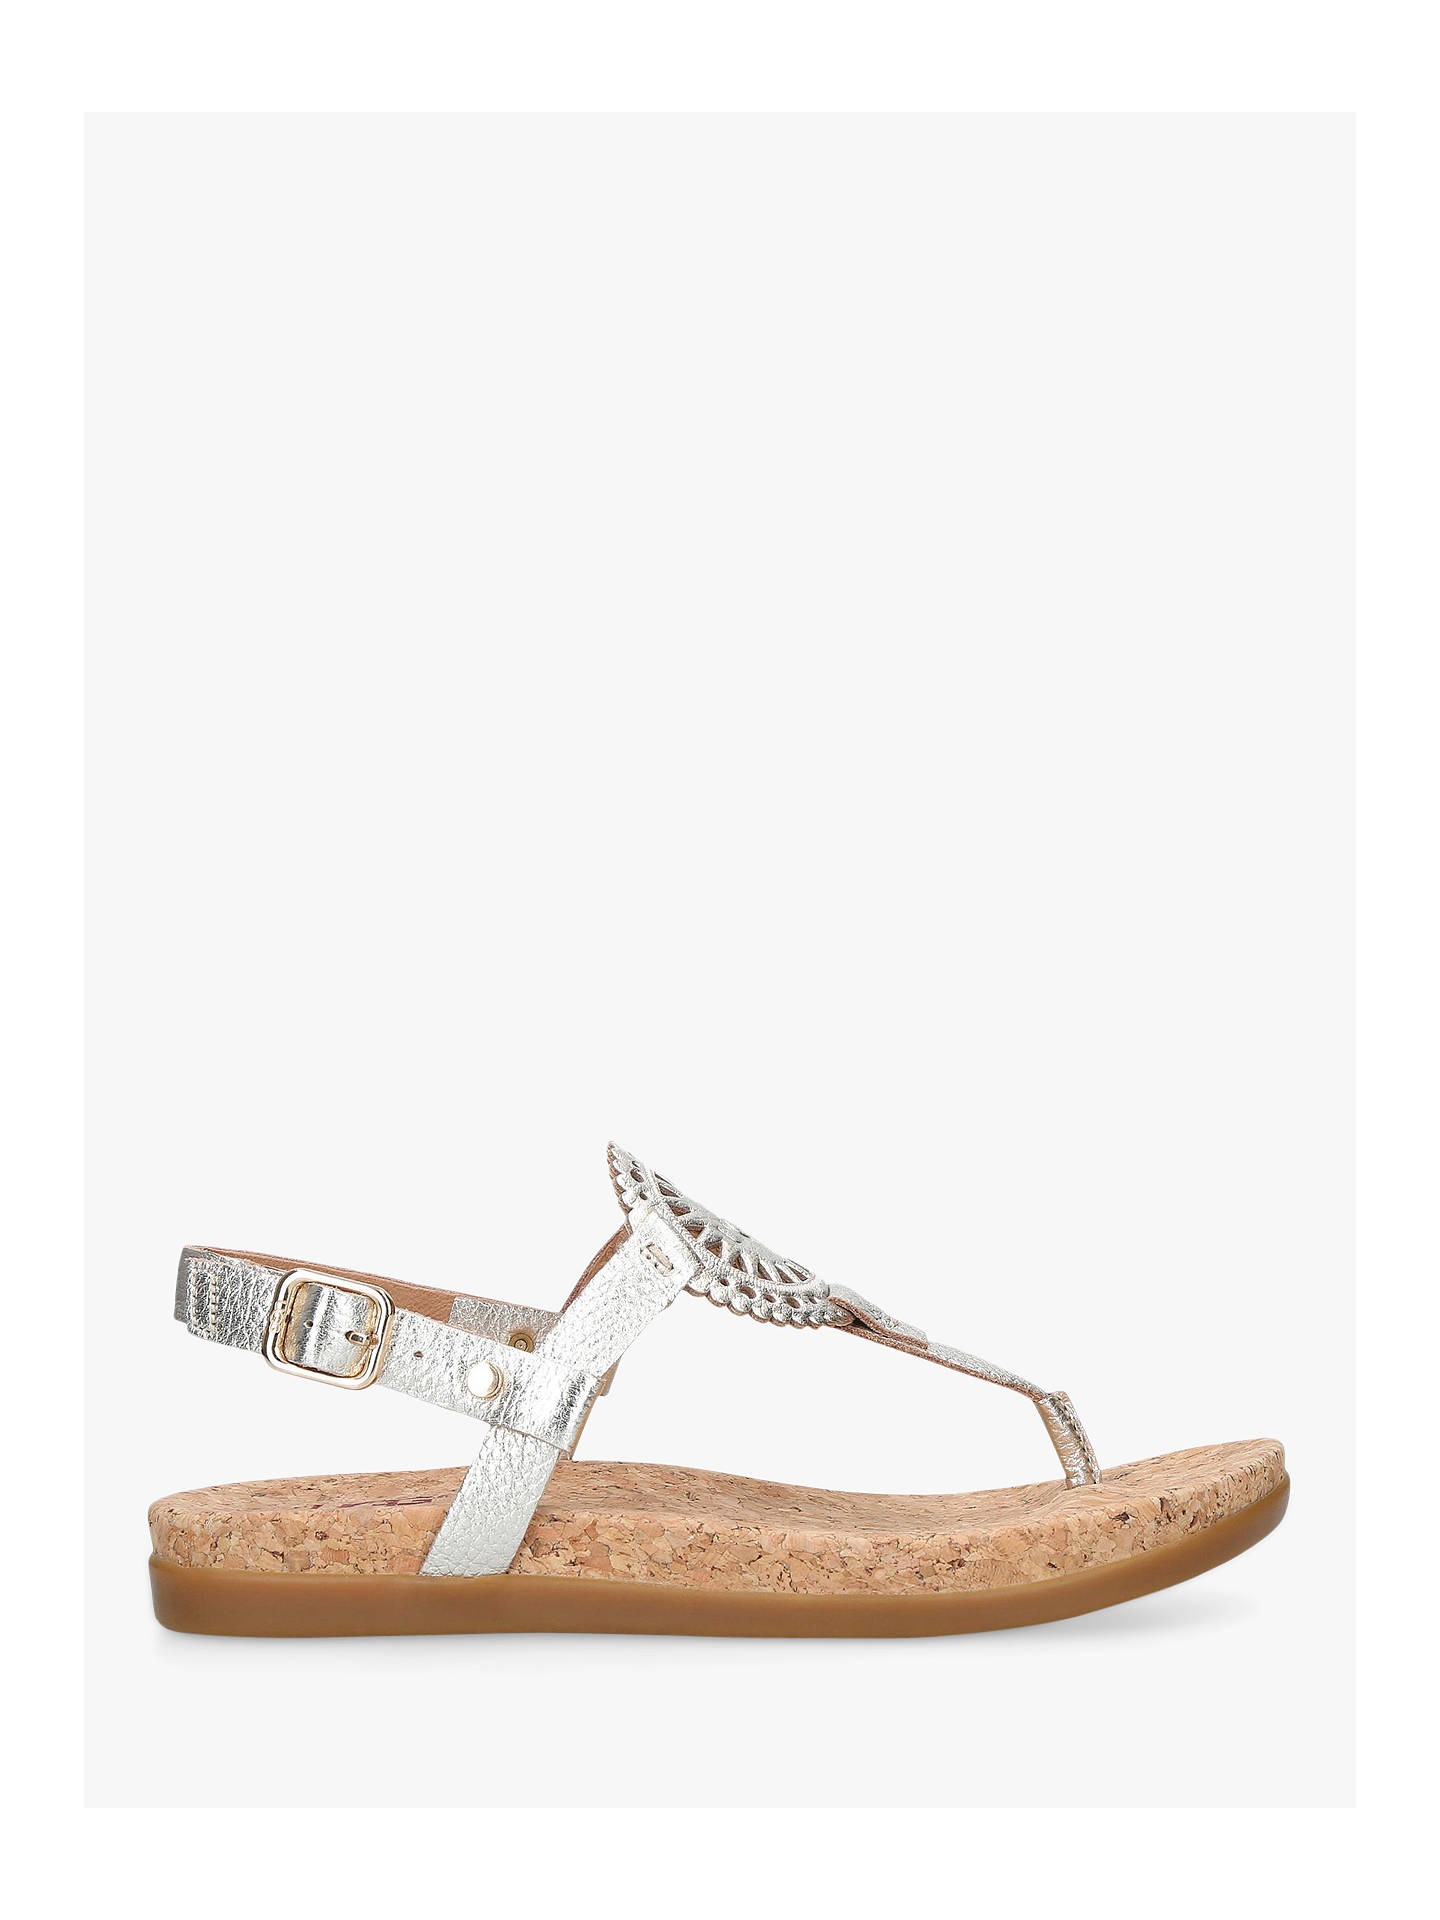 48881c8c236 UGG Ayden II Sandals, Gold Leather at John Lewis & Partners